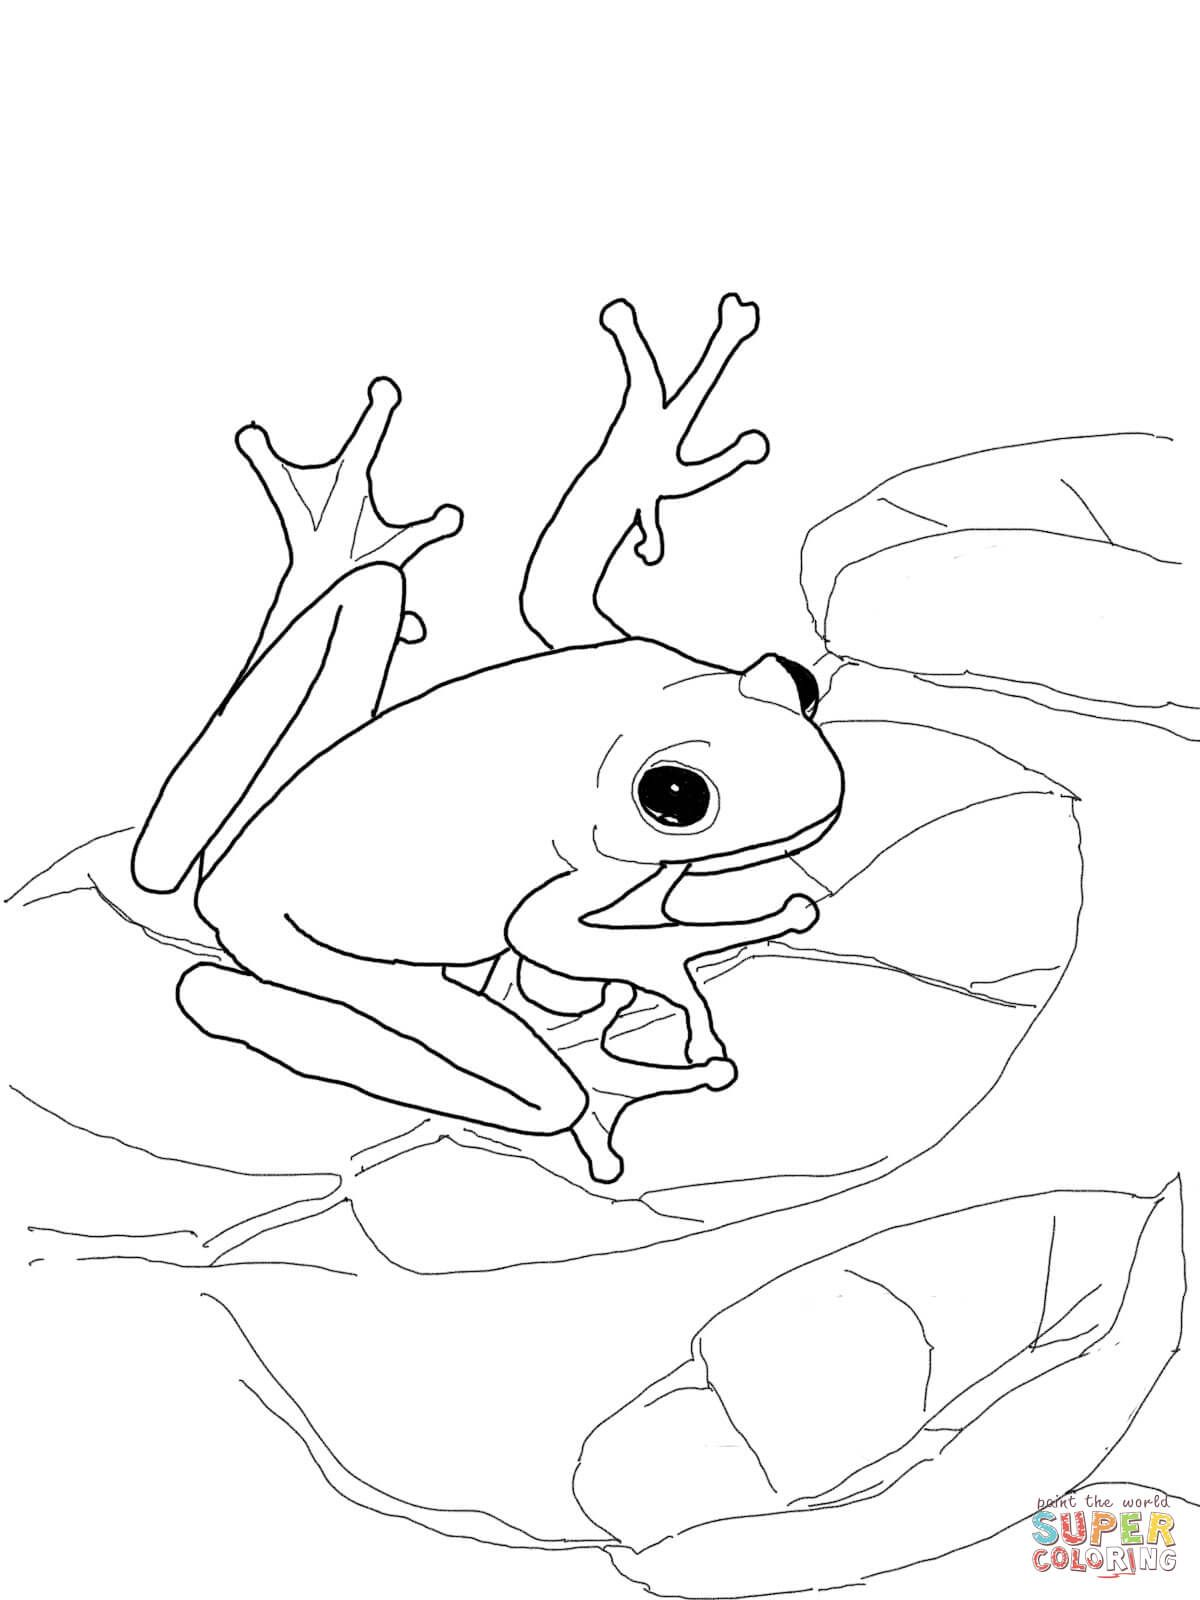 american-green-tree-frog-coloring-page.jpg (1200×1600) | coloring ...